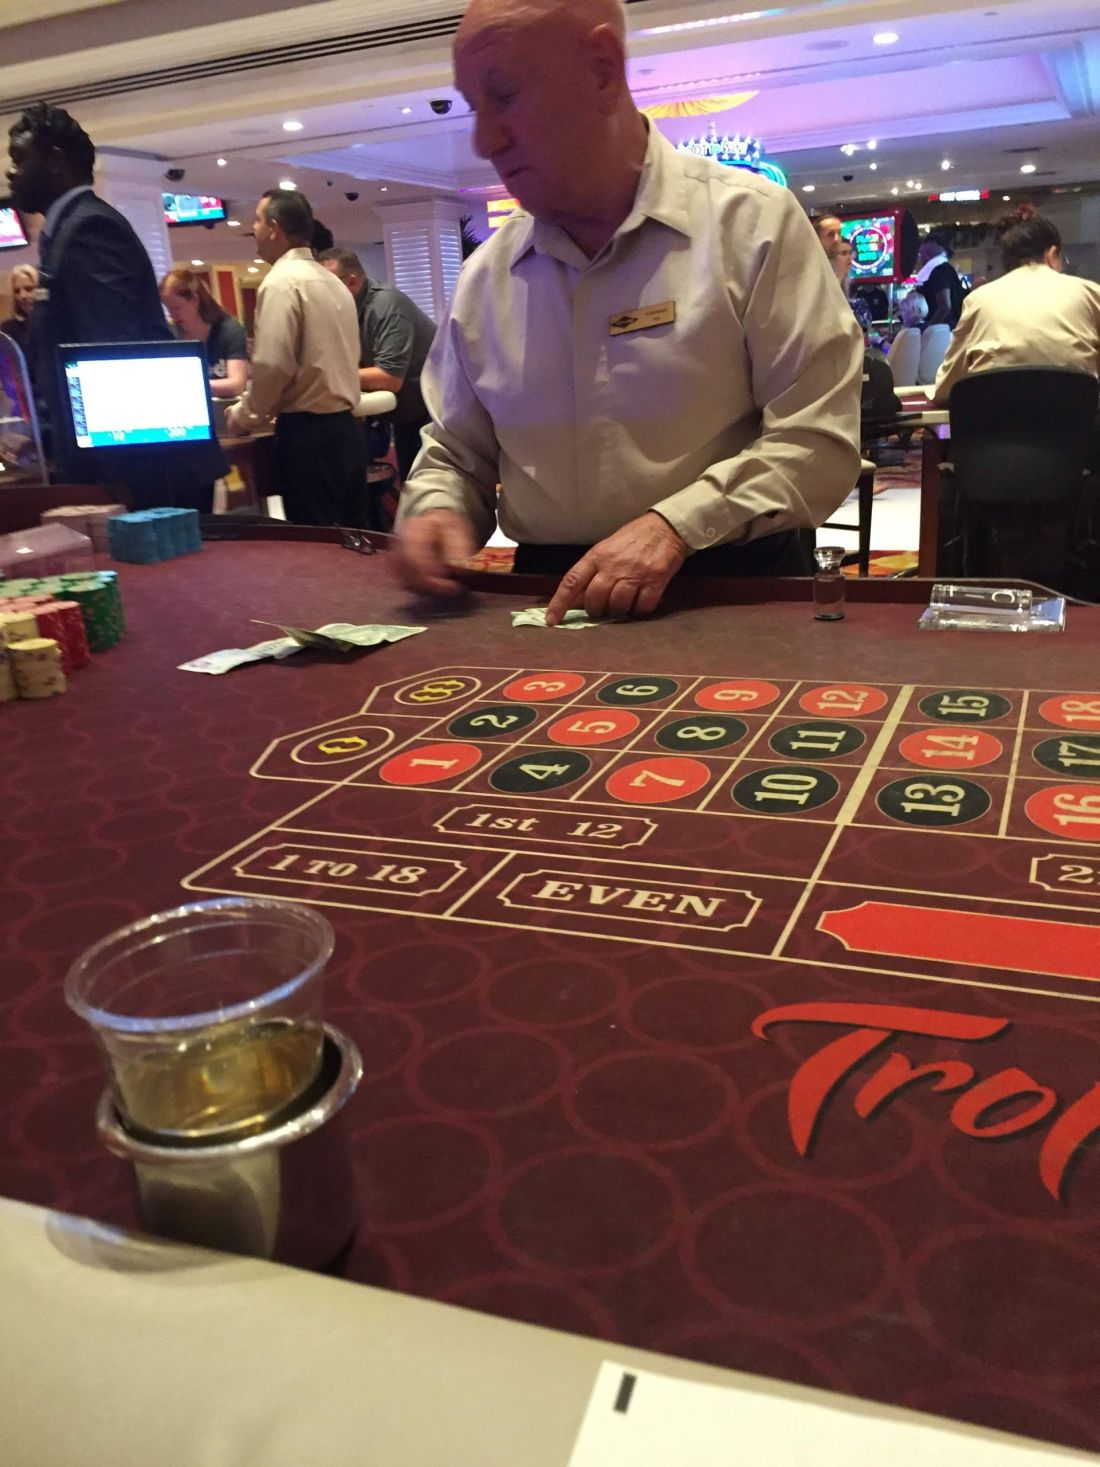 Gambling at the Tropicana Hotel, Las Vegas